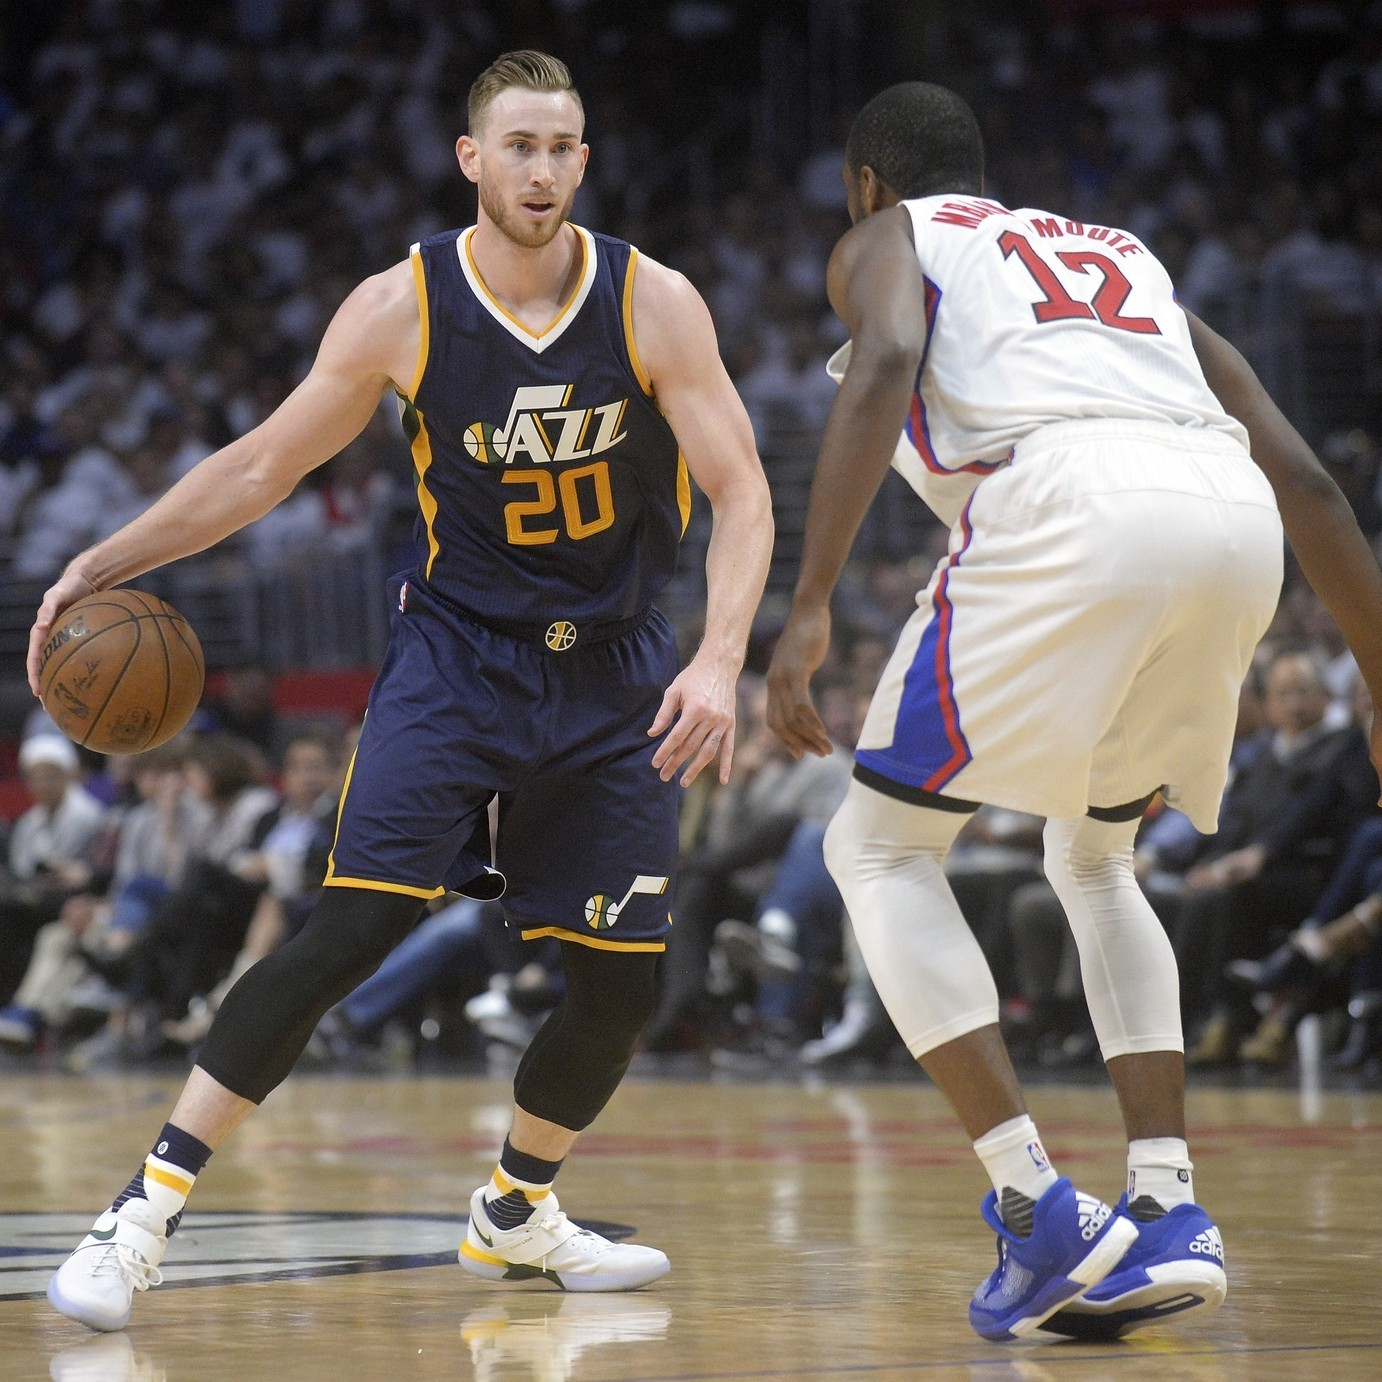 The-clippers-jazz-battle-will-be-won-or-lost-on-the-perimeter-1493135658.jpg?crop=0